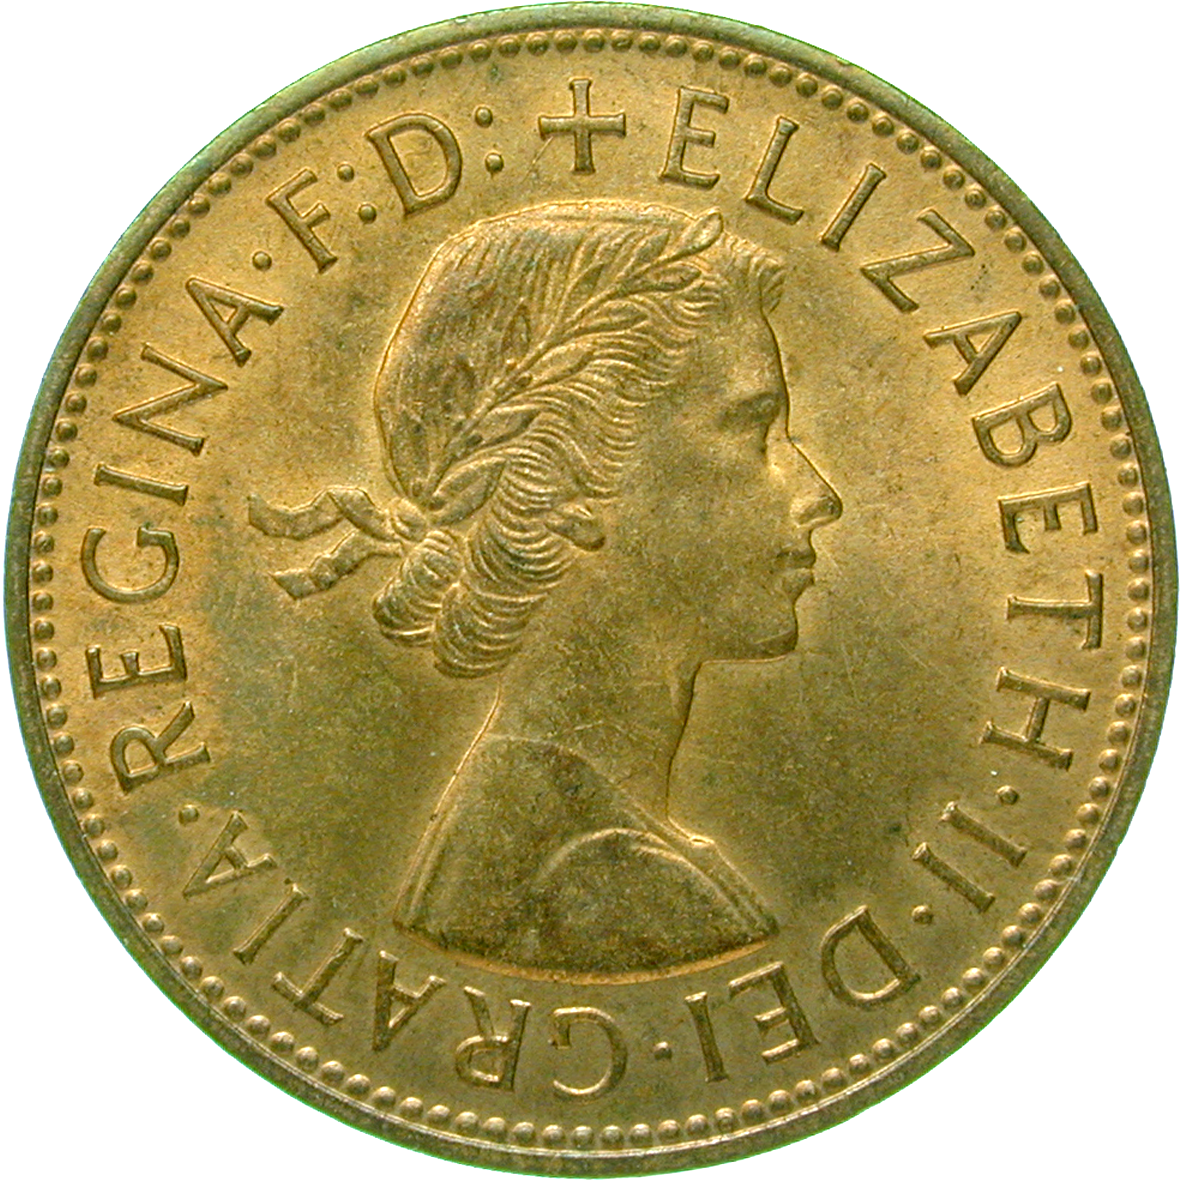 United Kingdom of Great Britain, Elizabeth II, 1 Penny 1967 (obverse)